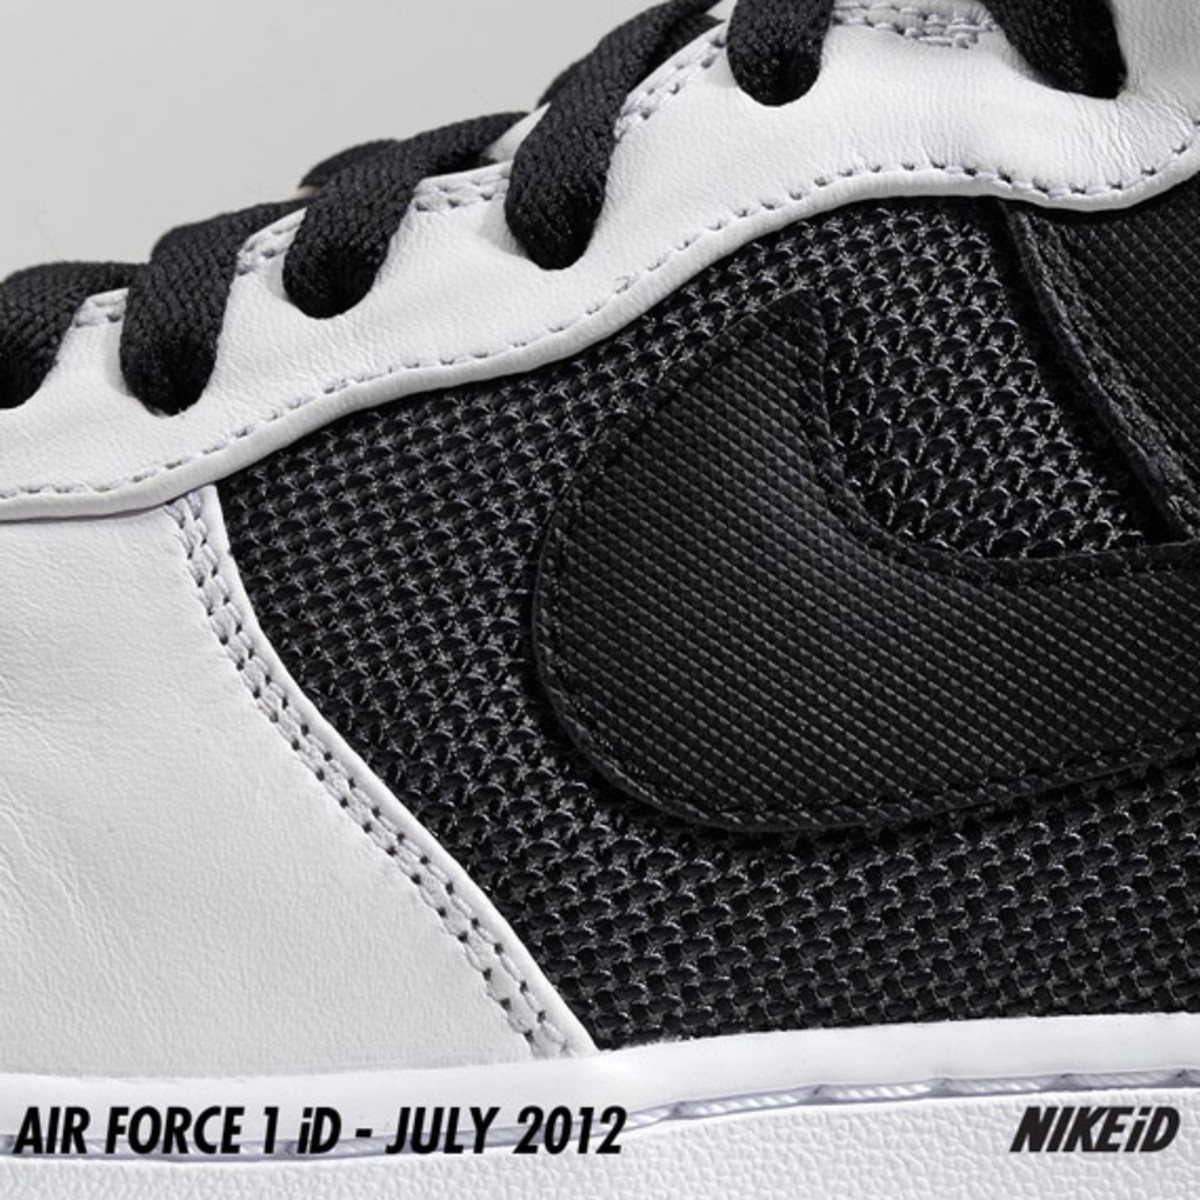 nikeid-air-force-1-id-tactical-mesh-grip-leather-design-july-2012-07